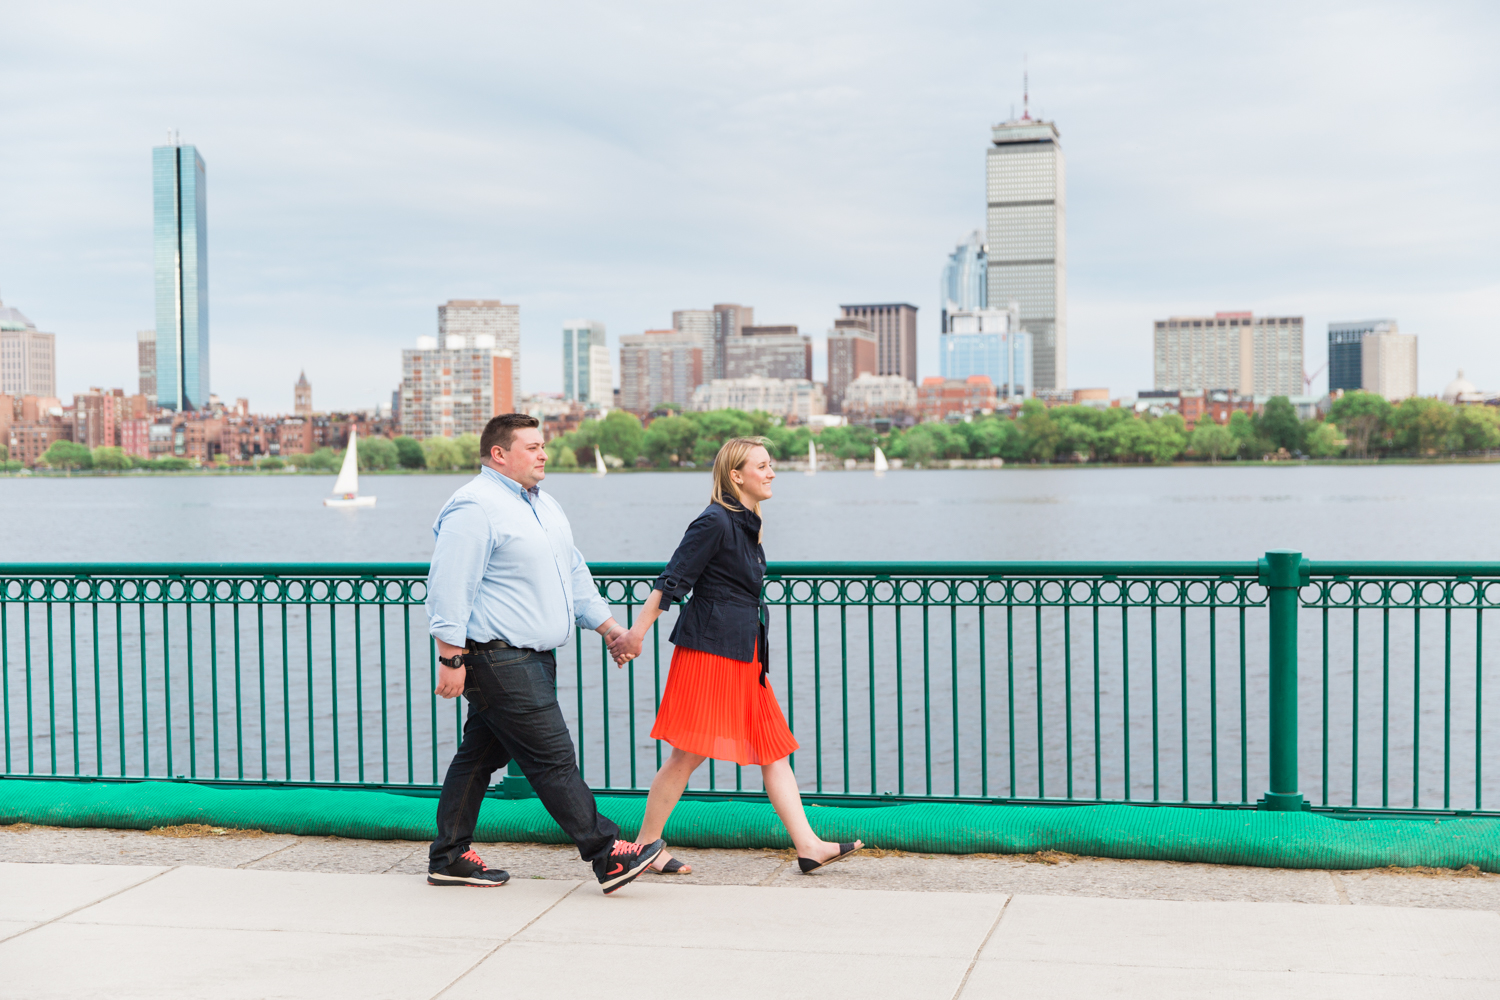 harvard-art-museum-engagement-photography-session-16